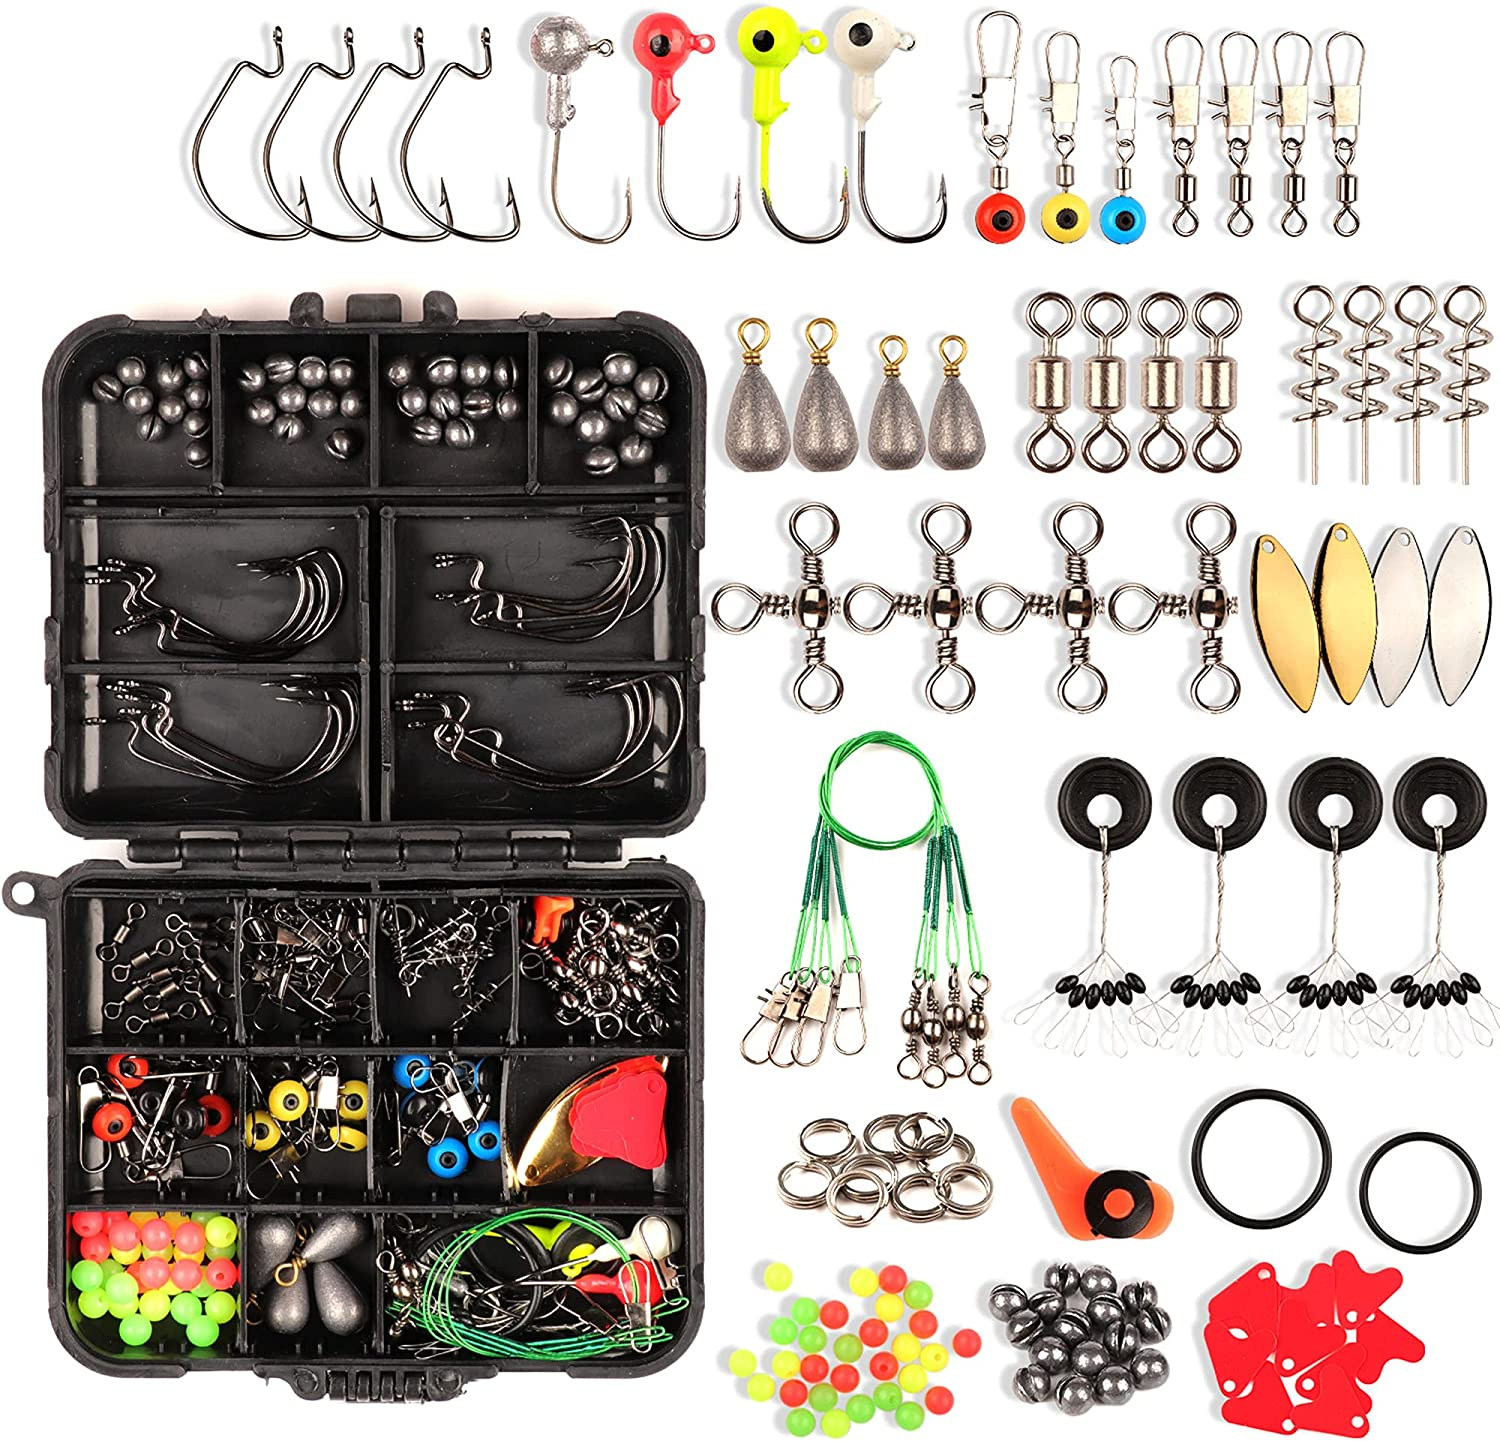 Fishing Gear and Tackle Box Organizer, Complete Fishing Equipment and Fishing Accessories Kit, Fishing Gifts for Men with Fishing Lures, Baits and Attractants - CYRUSGOLD : Sports & Outdoors